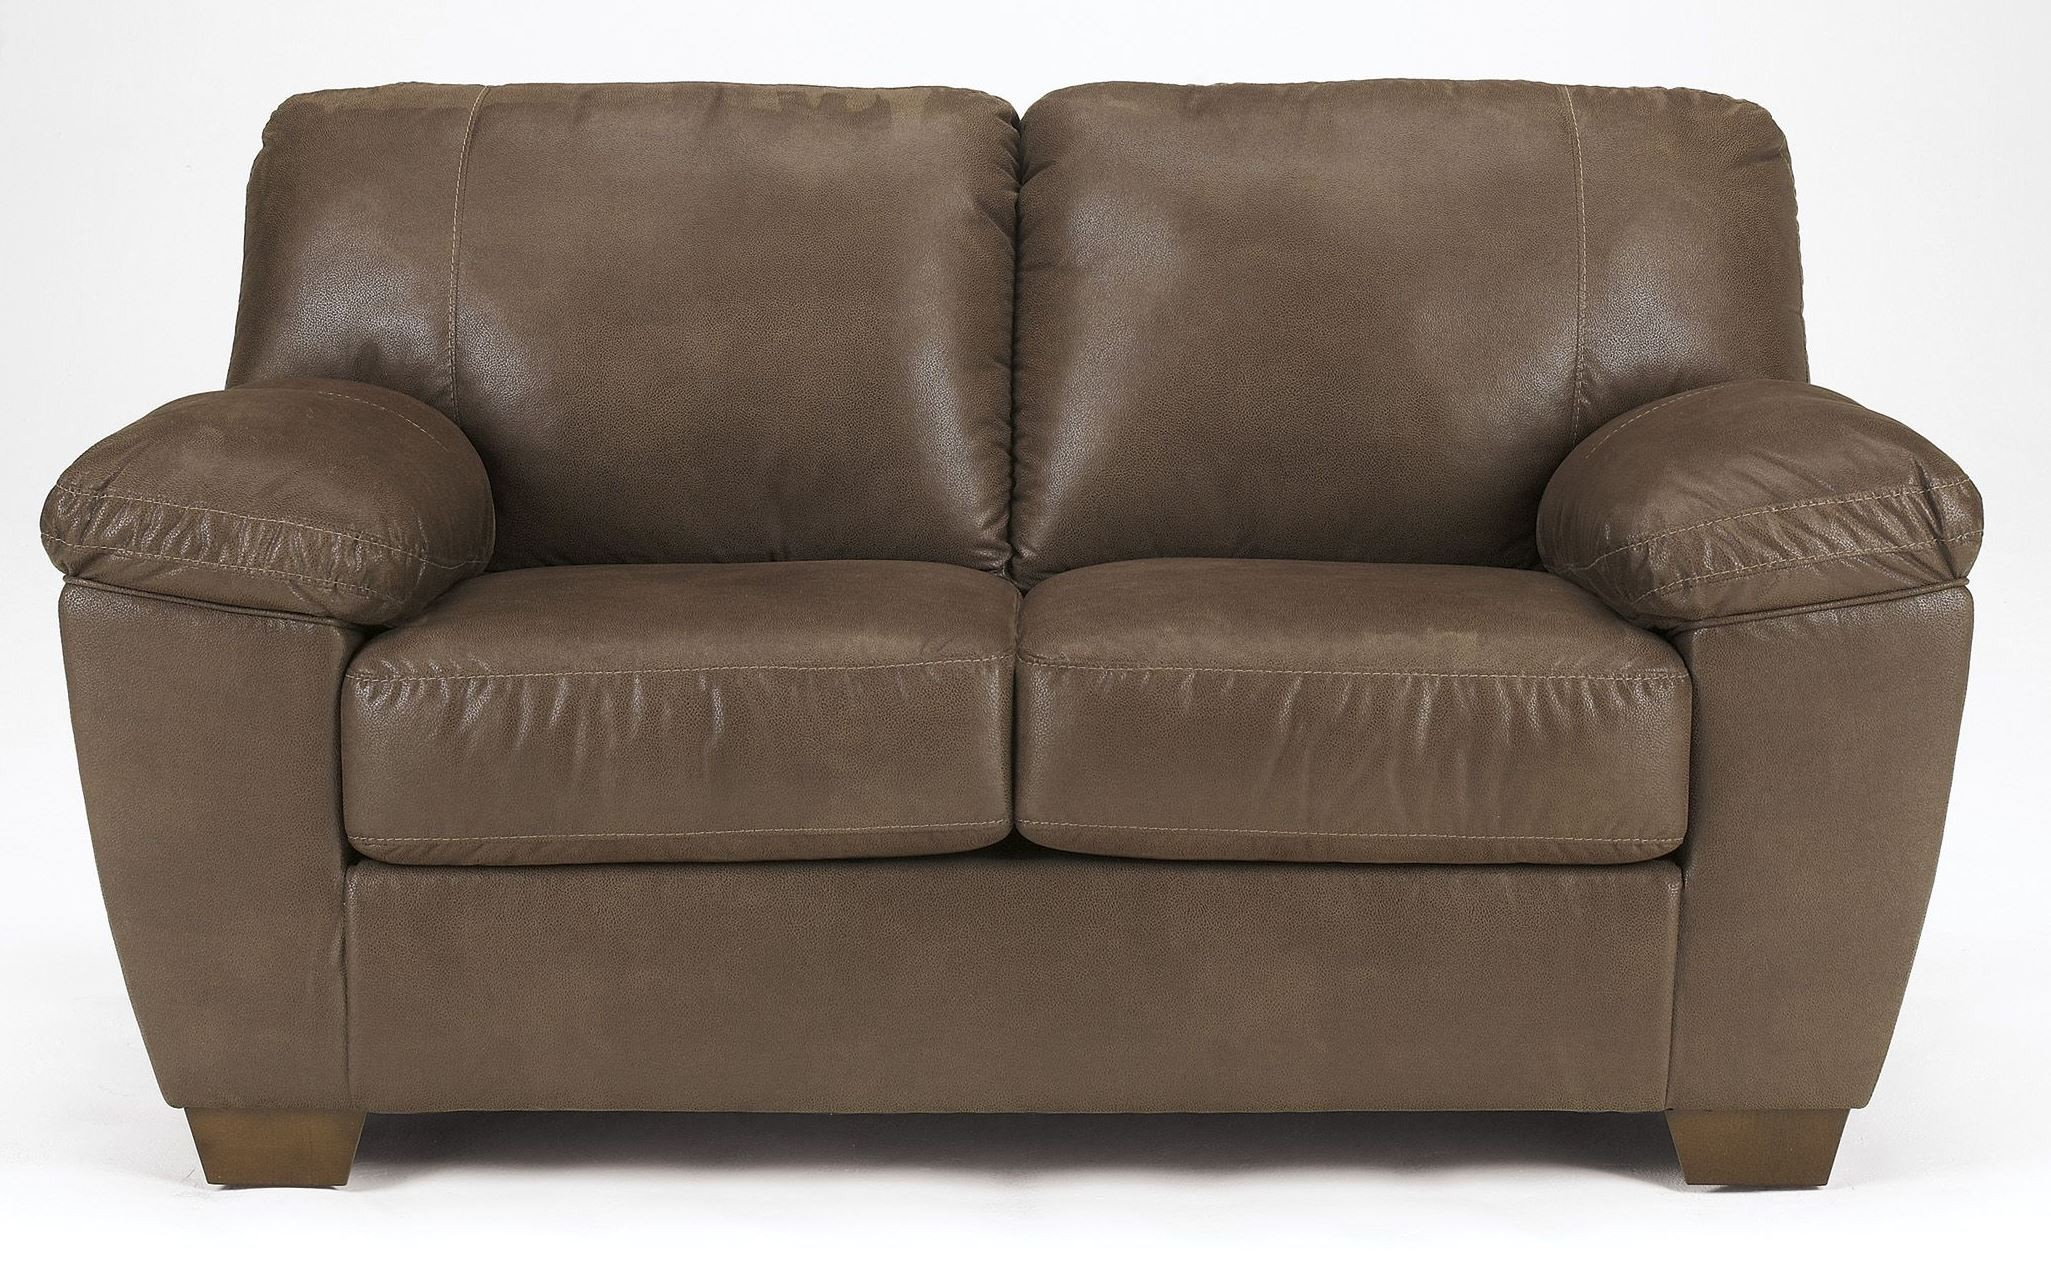 Amazon Walnut Loveseat From Ashley 6750535 Coleman